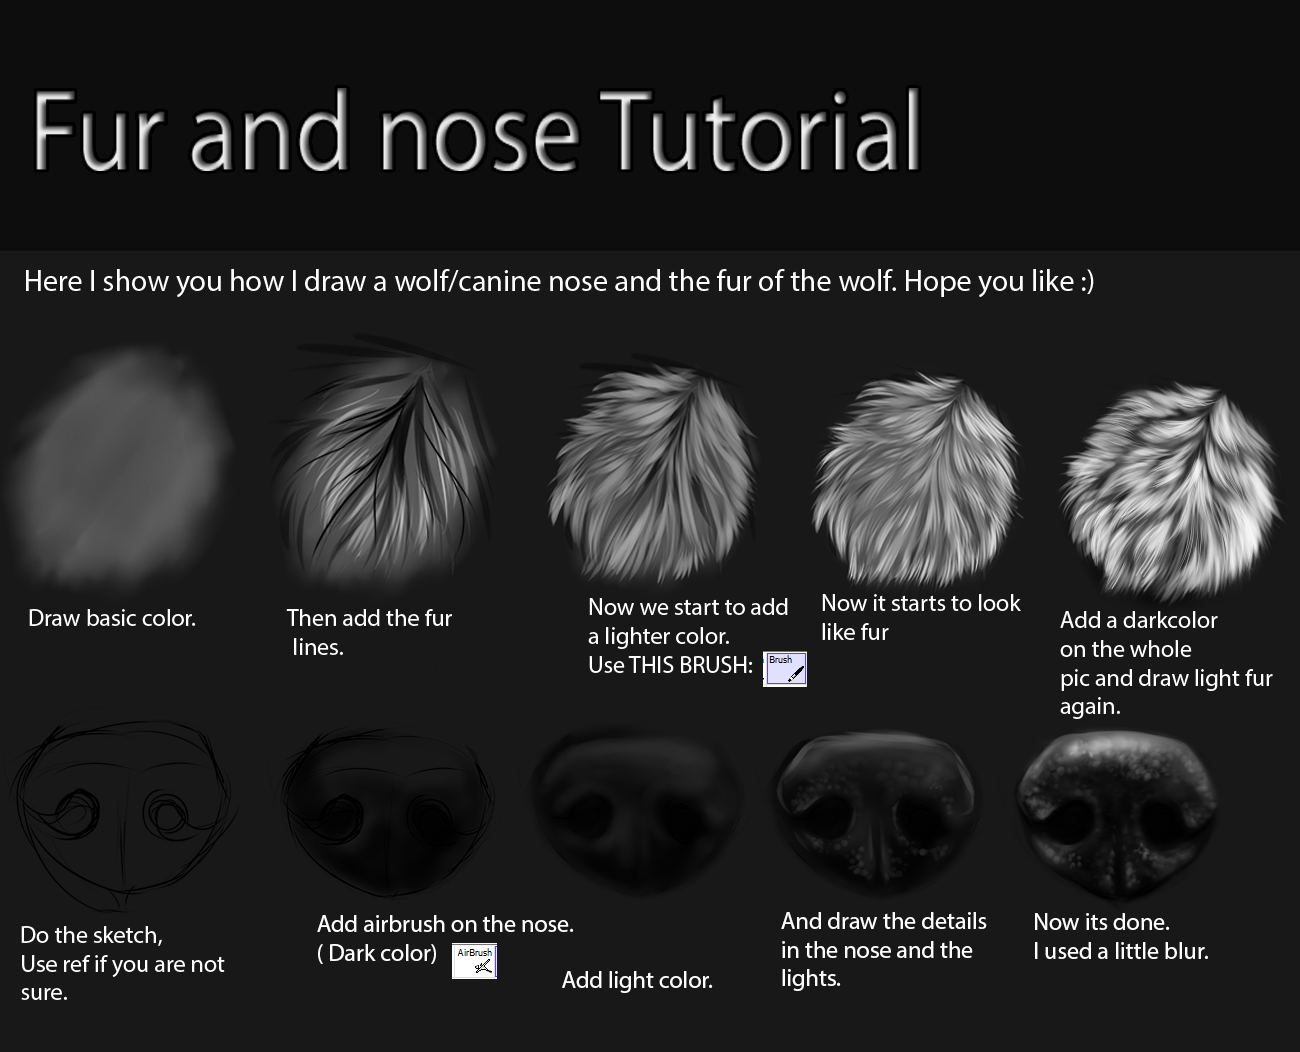 Nose And Fur Tutorial By Themysticwolf Nose And Fur Tutorial By  Themysticwolf